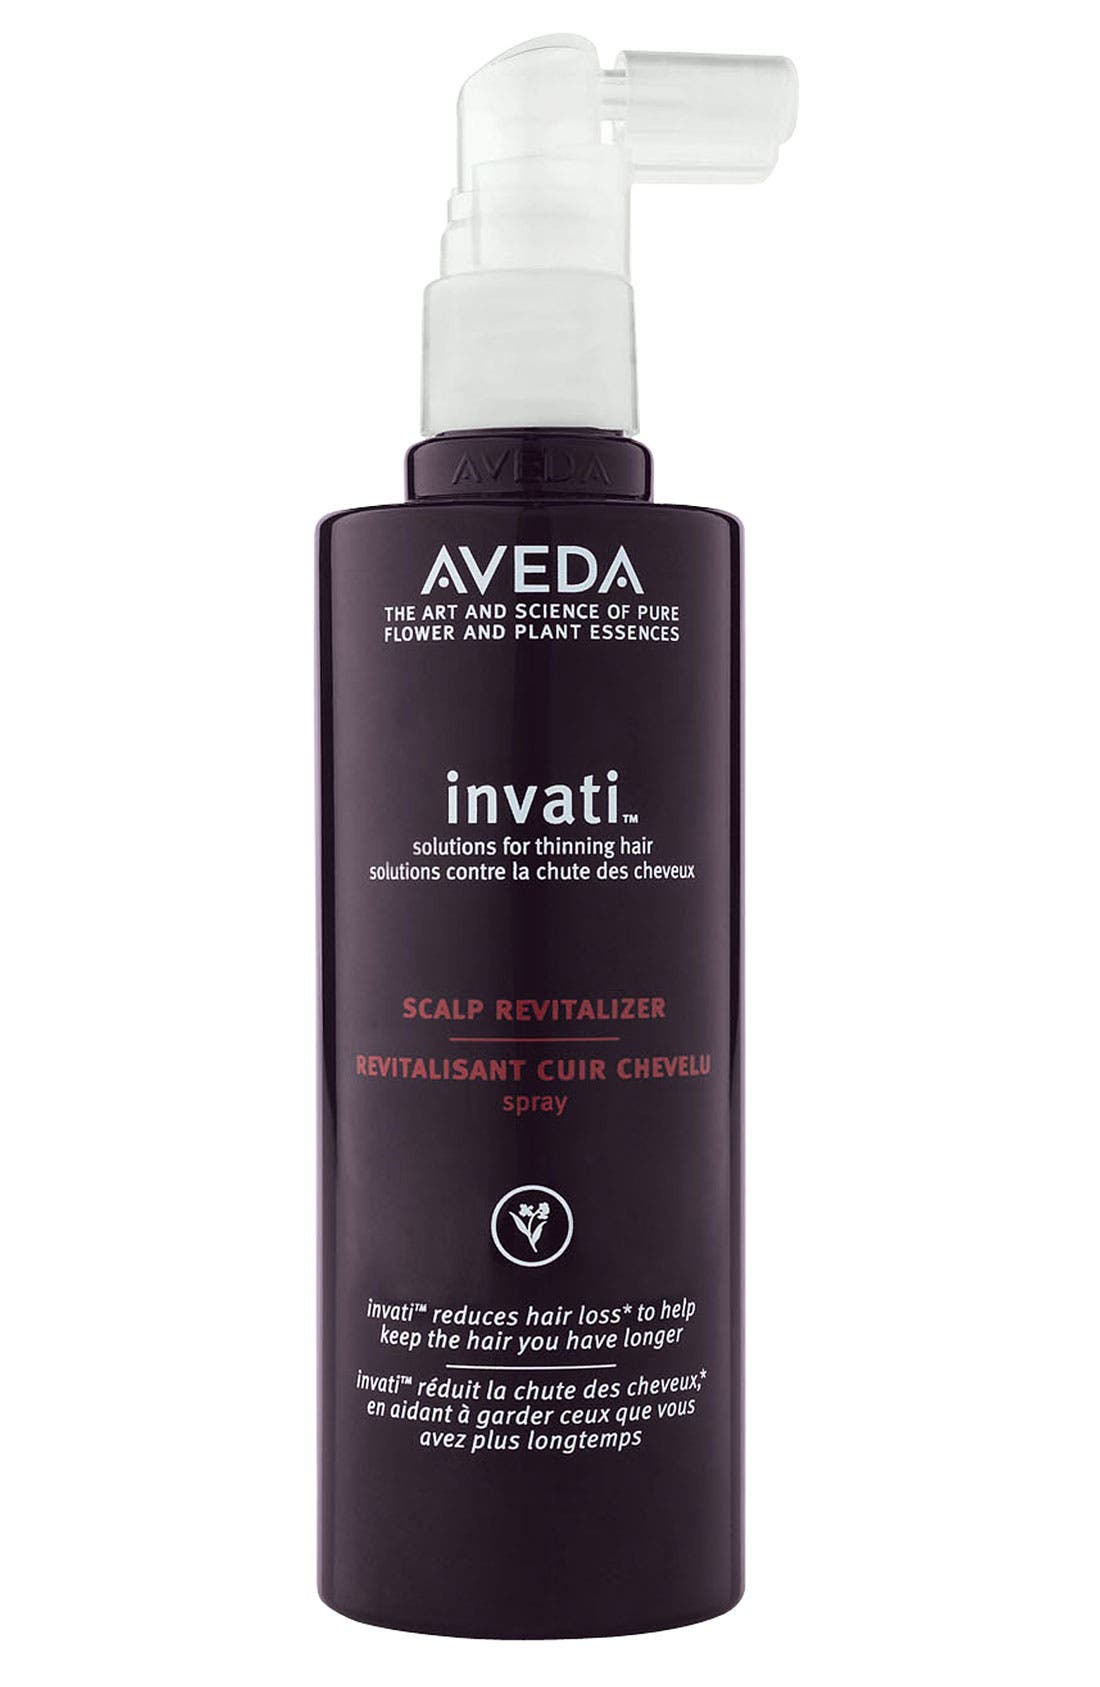 Aveda invati™ Scalp Revitalizer